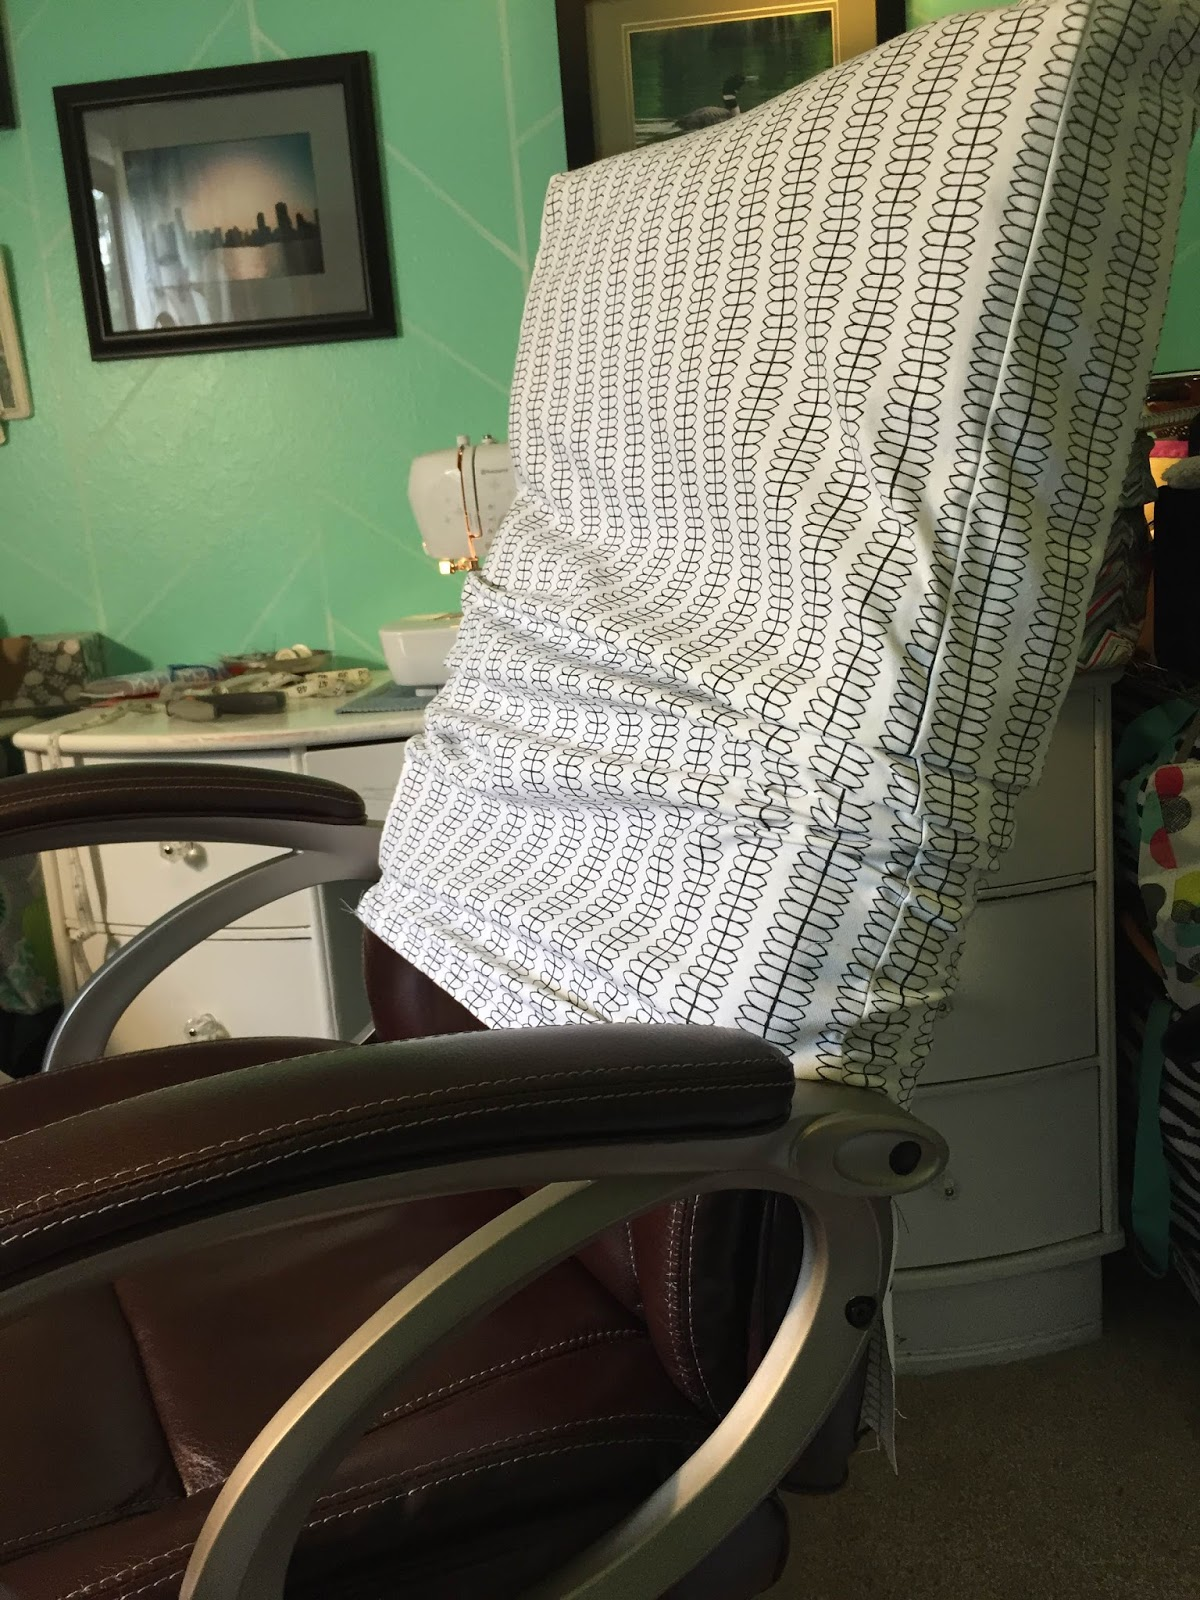 Chair Covers Office Seats Kitchen Chairs On Wheels The Dabbling Crafter Diy Sunday Cover